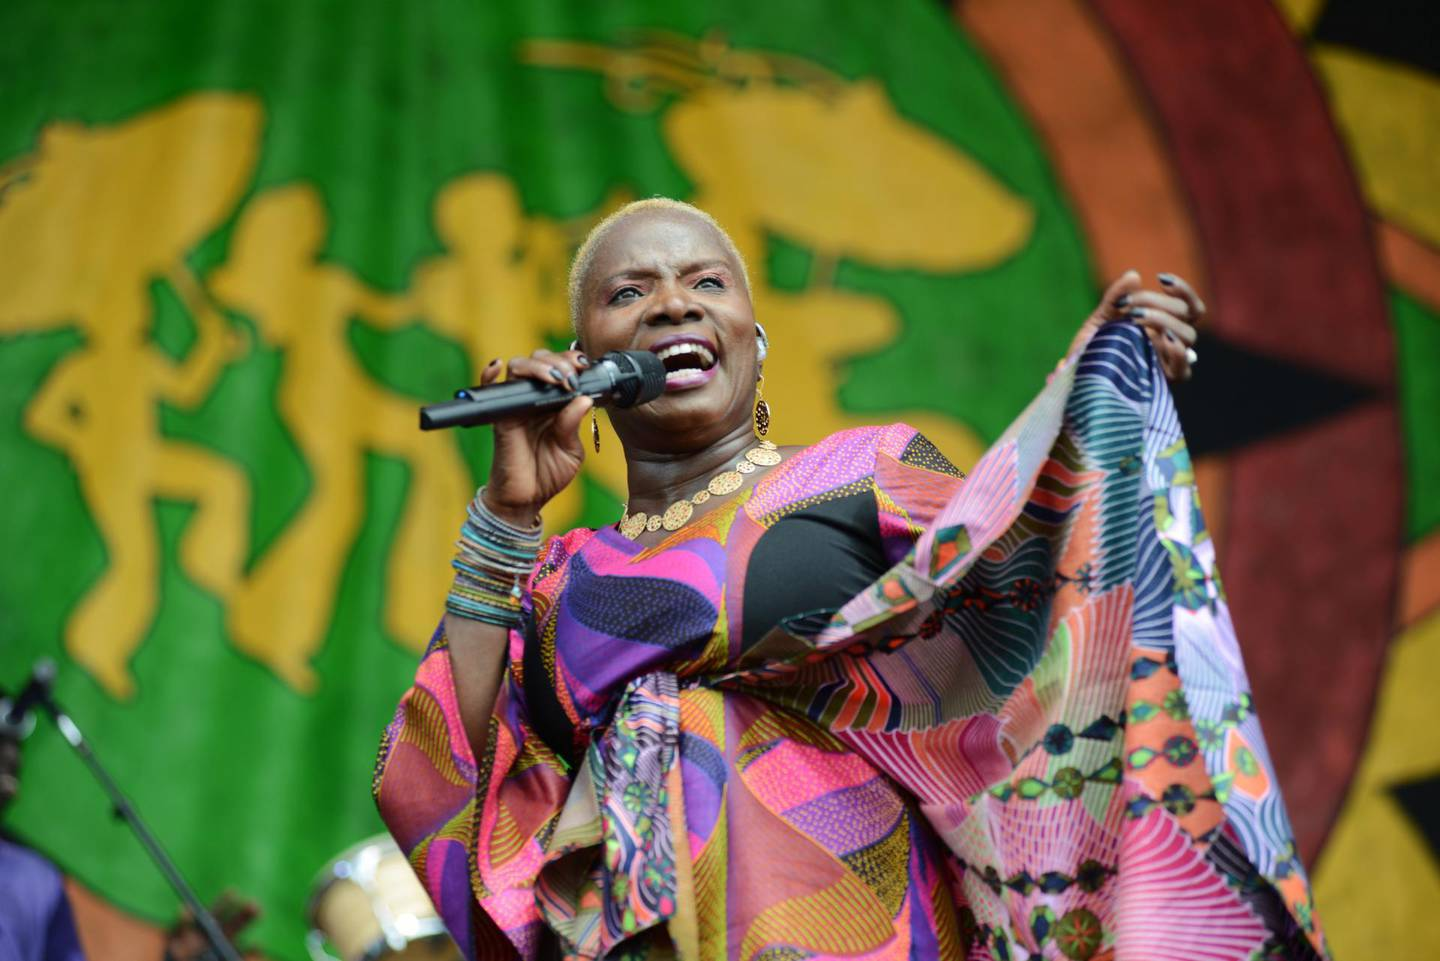 NEW ORLEANS, LA - APRIL 26:  Angelique Kidjo performs on stage at the New Orleans Jazz and Heritage Festival on April 26, 2015 in New Orleans, United States  (Photo by Leon Morris/Redferns via Getty Images)